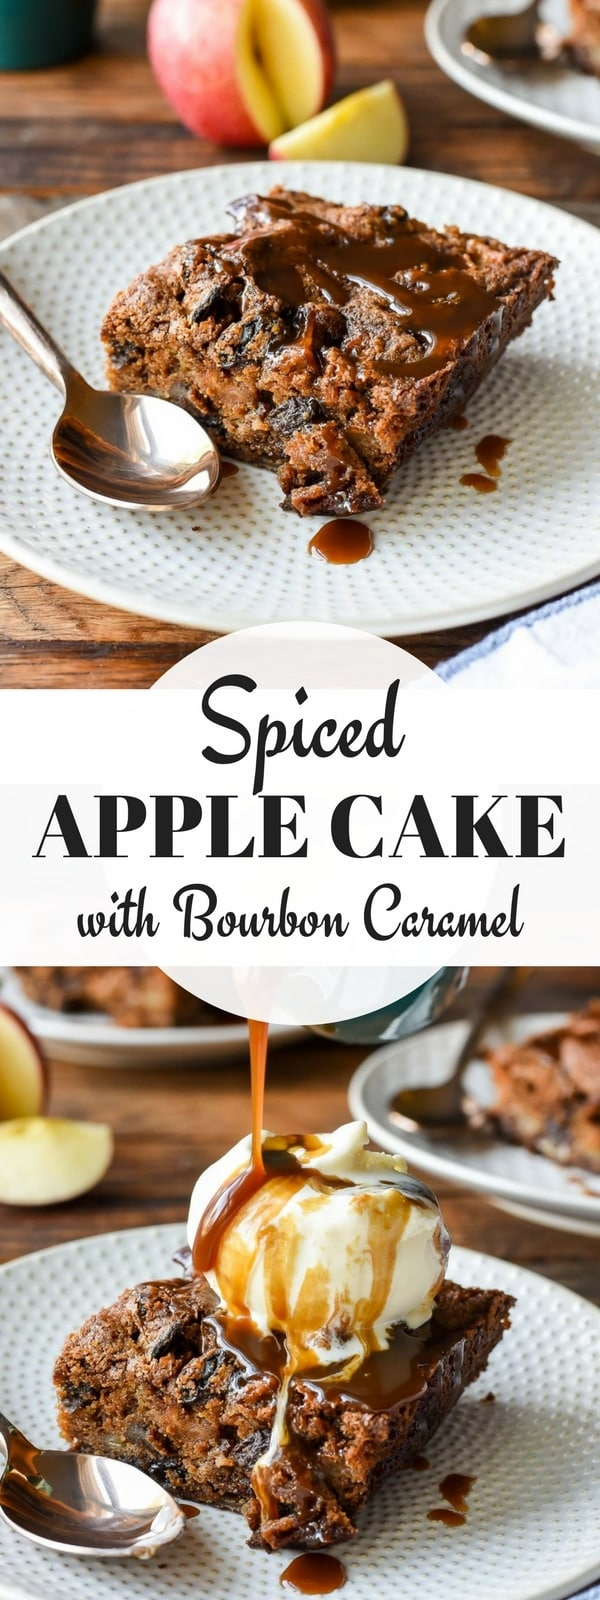 Add this Spiced Apple Cake with Bourbon Caramel to your Thanksgiving menu! Loaded with chewy bits of dried fruit and pecans, this warm and spicy cake is perfect for fall!